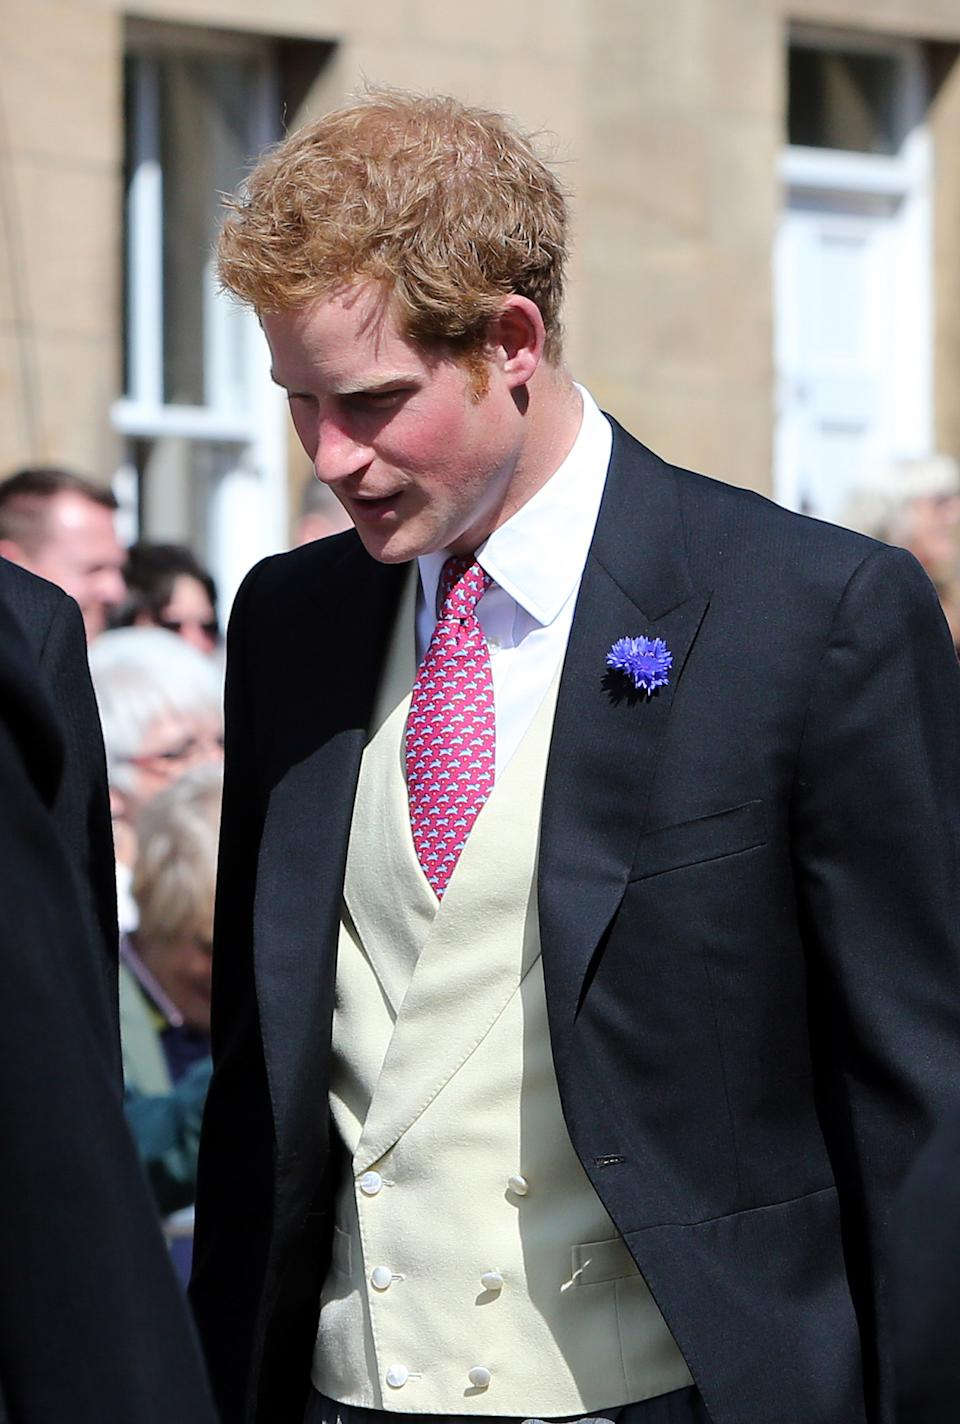 Britain's Prince Harry arrives at the wedding of the Duke and Duchess of Northumberland's daughter Lady Melissa Percy to chartered surveyor Thomas van Straubenzee at St Michael's Church in Alnwick, England, Saturday, June 22, 2013. (AP Photo/Scott Heppell)